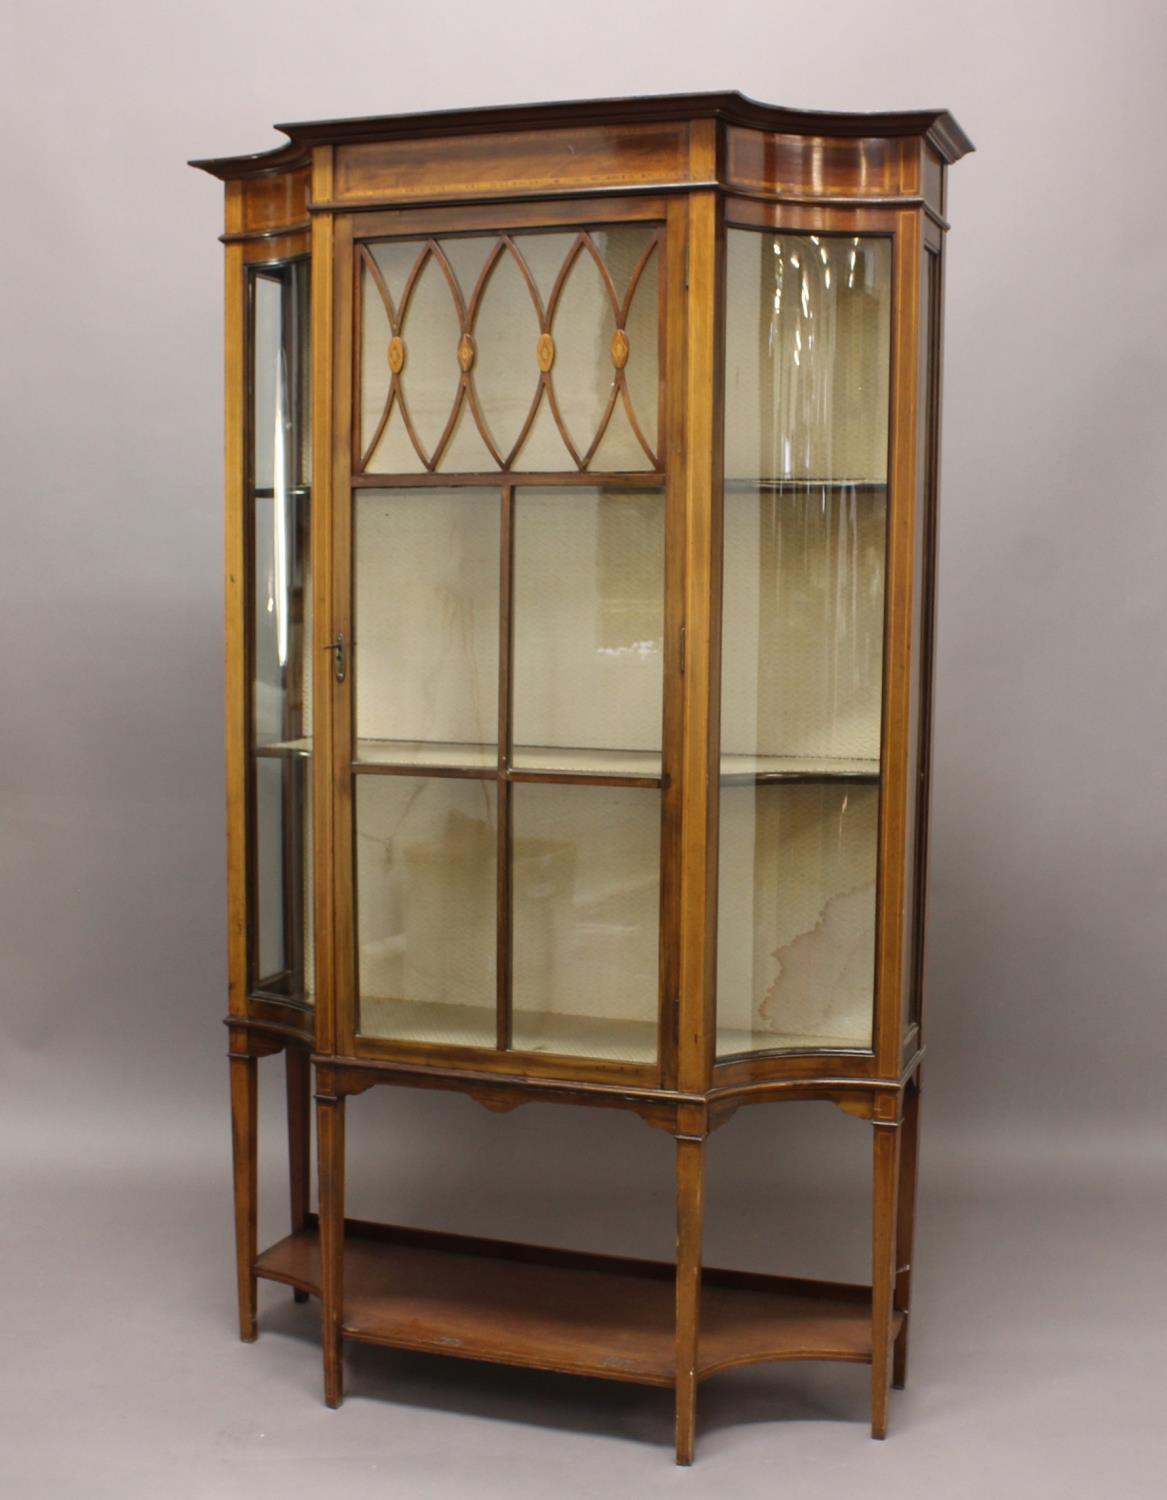 AN EDWARDIAN SHERATON REVIVAL INLAID MAHOGANY DISPLAY CABINET, the central glazed door flanked by